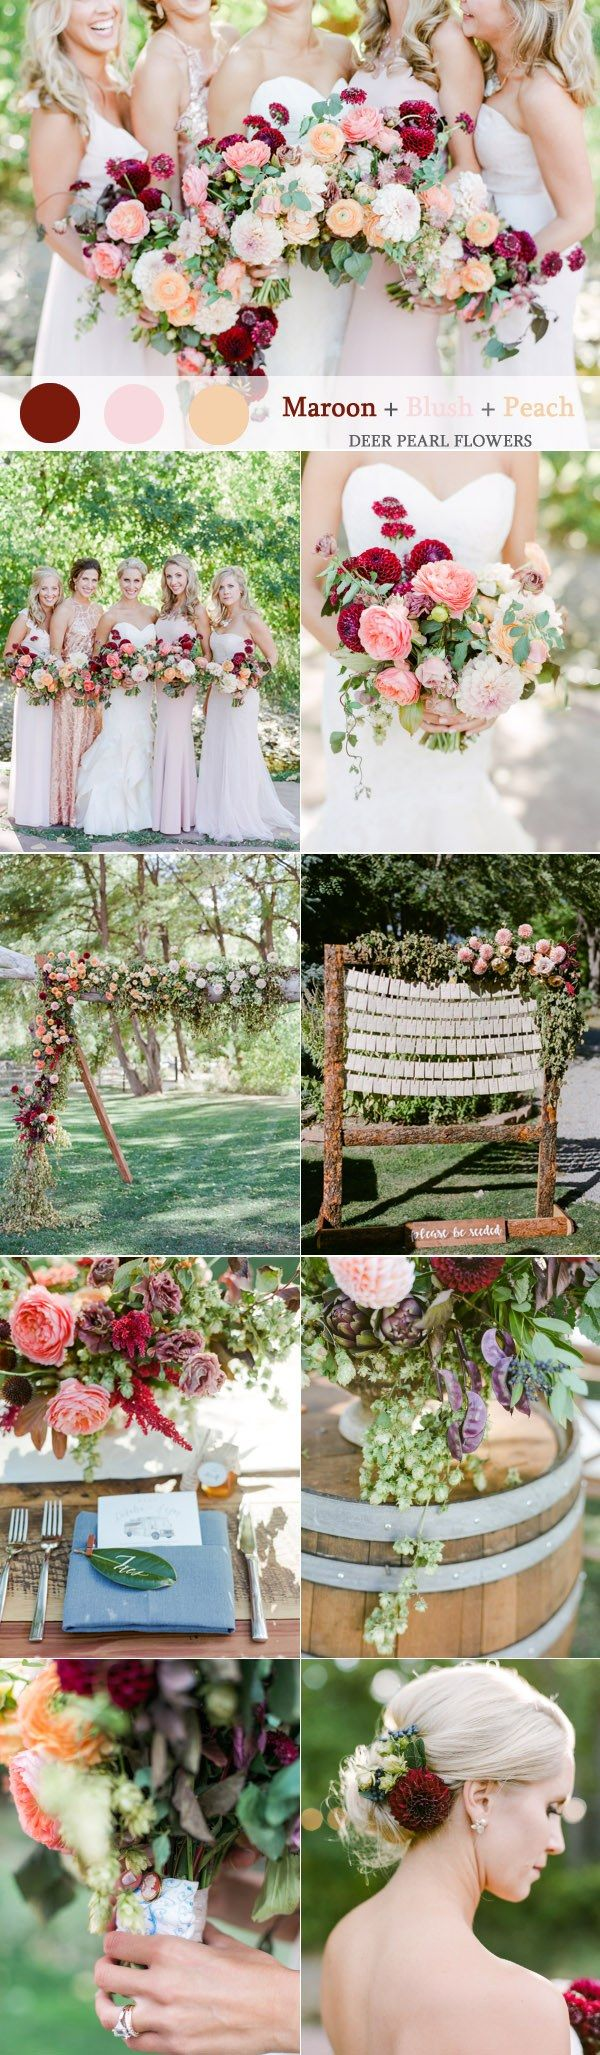 Maroon blush and peach wedding color ideas  / http://www.deerpearlflowers.com/maroon-wedding-color-combos/